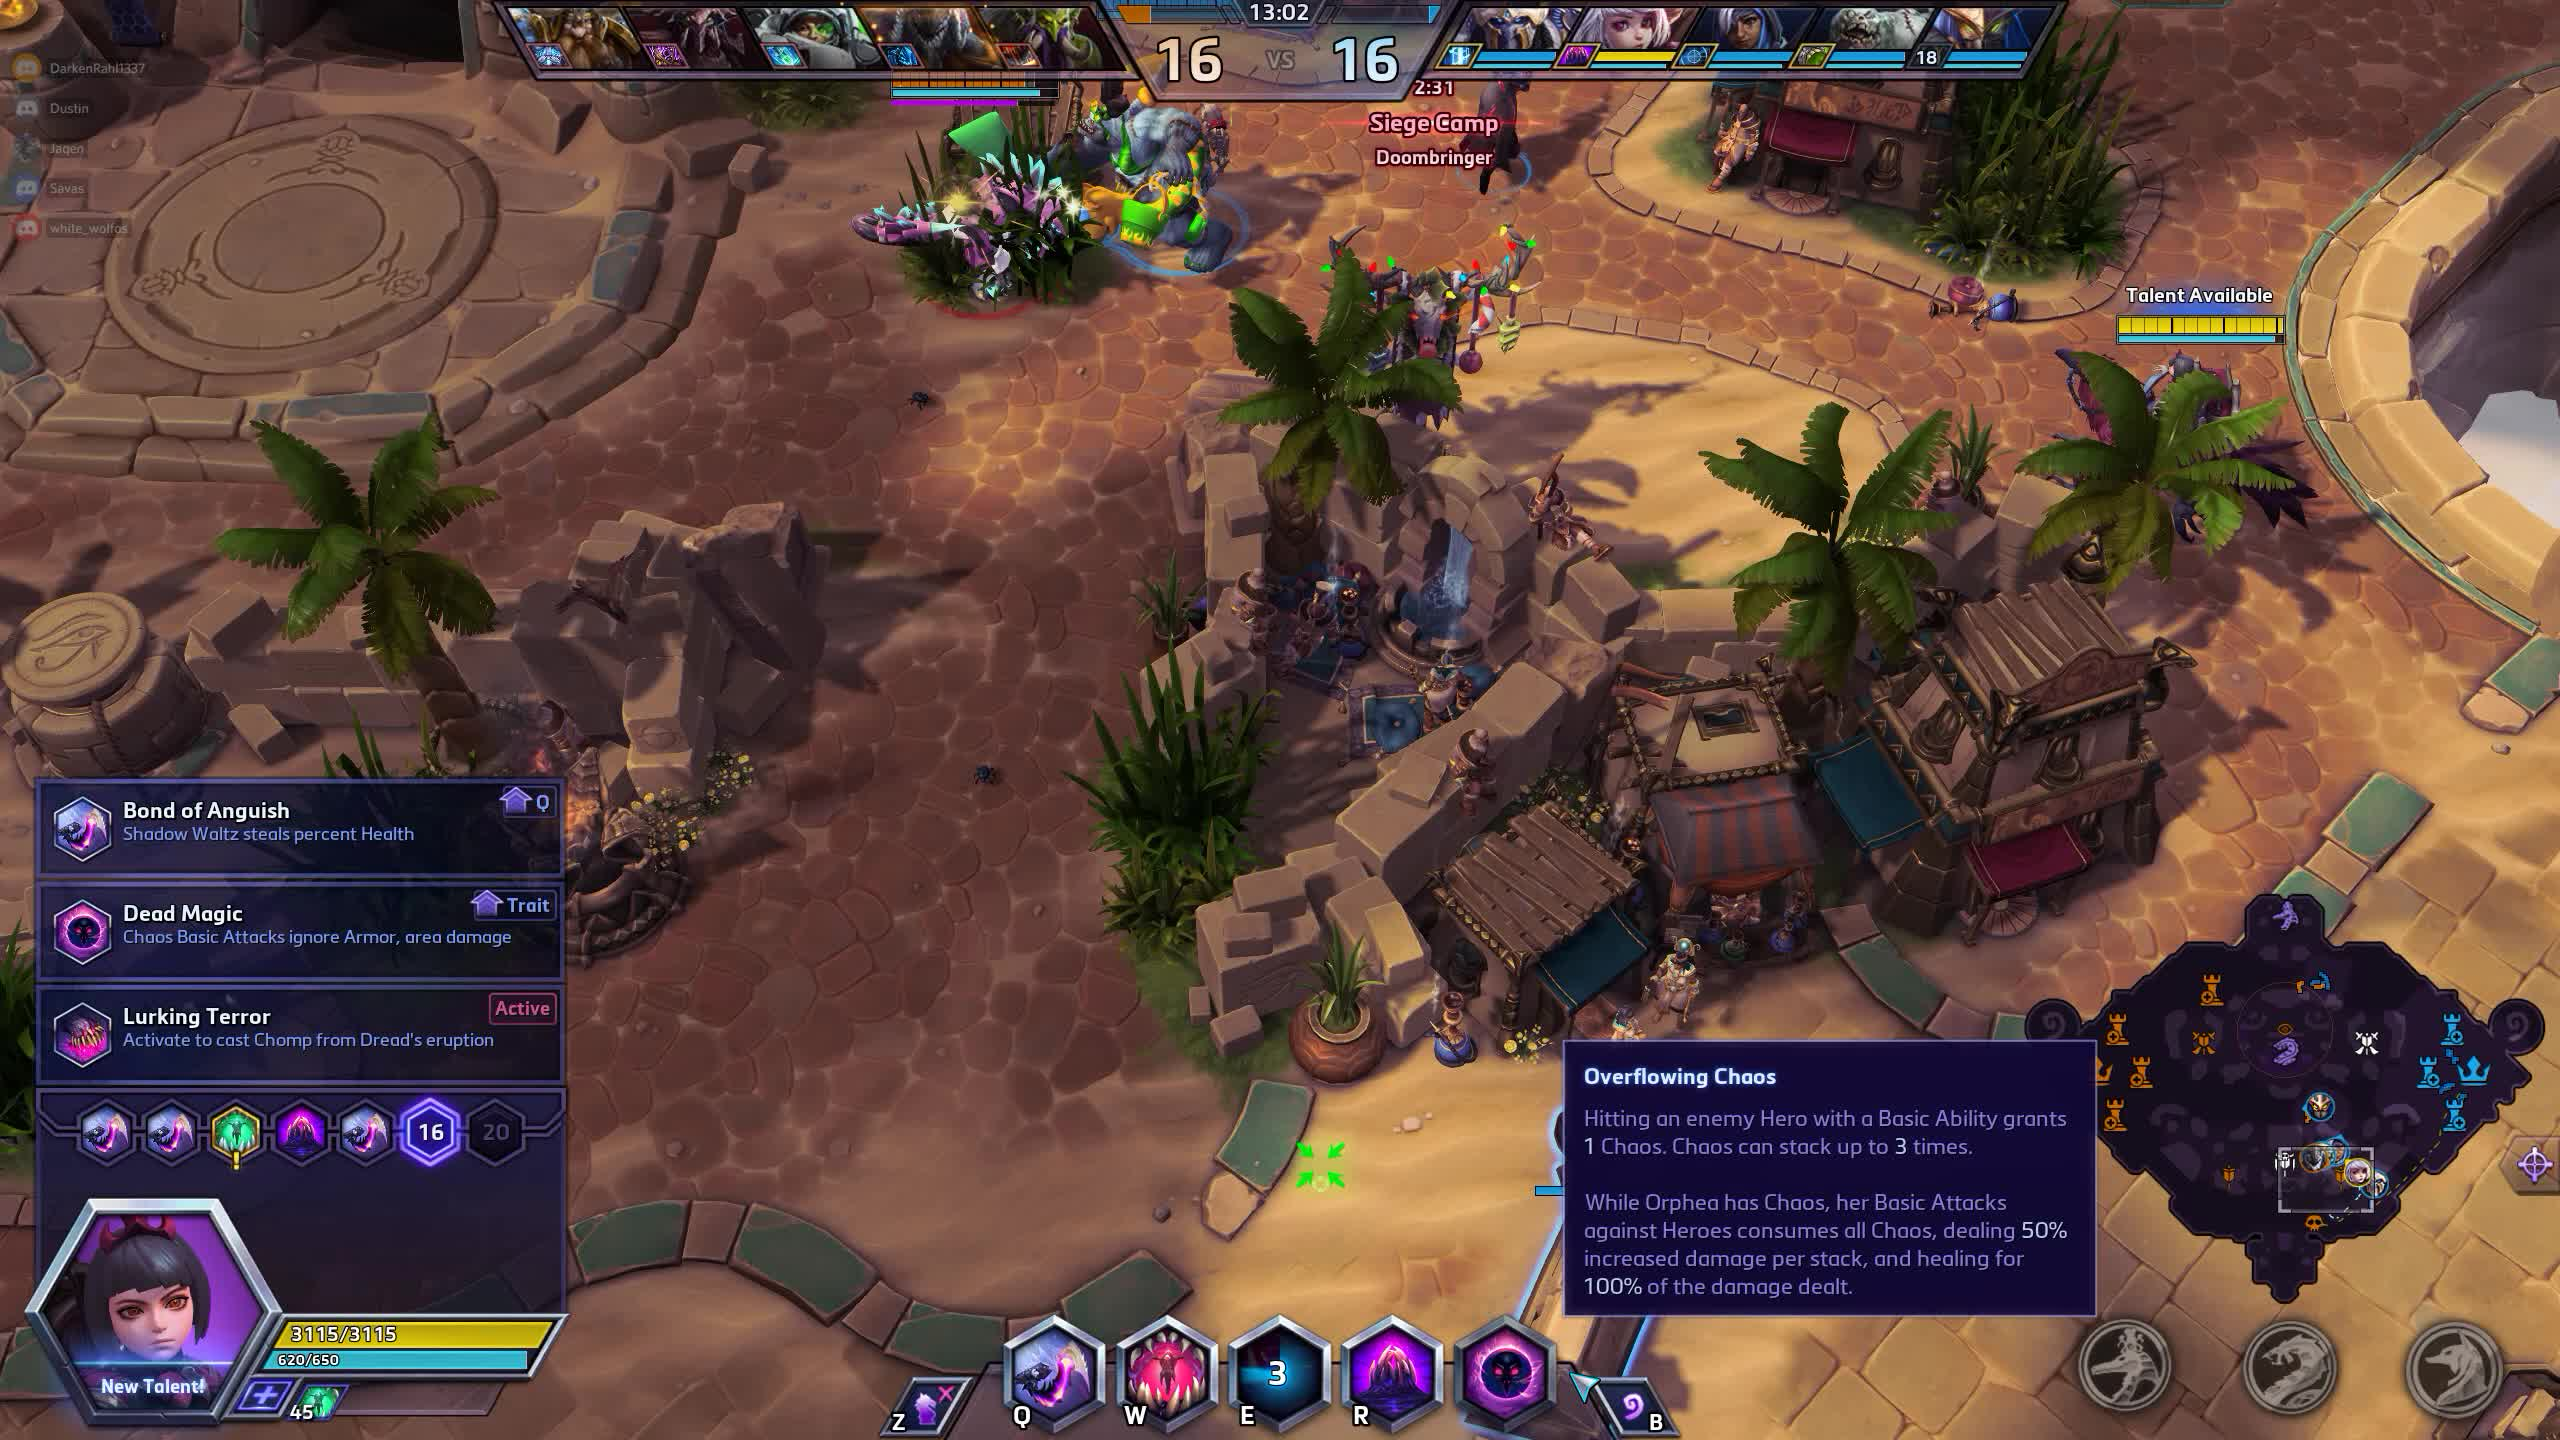 heroesofthestorm, Heroes of the Storm 2018.12.09 - 00.25.19.09.DVR GIFs